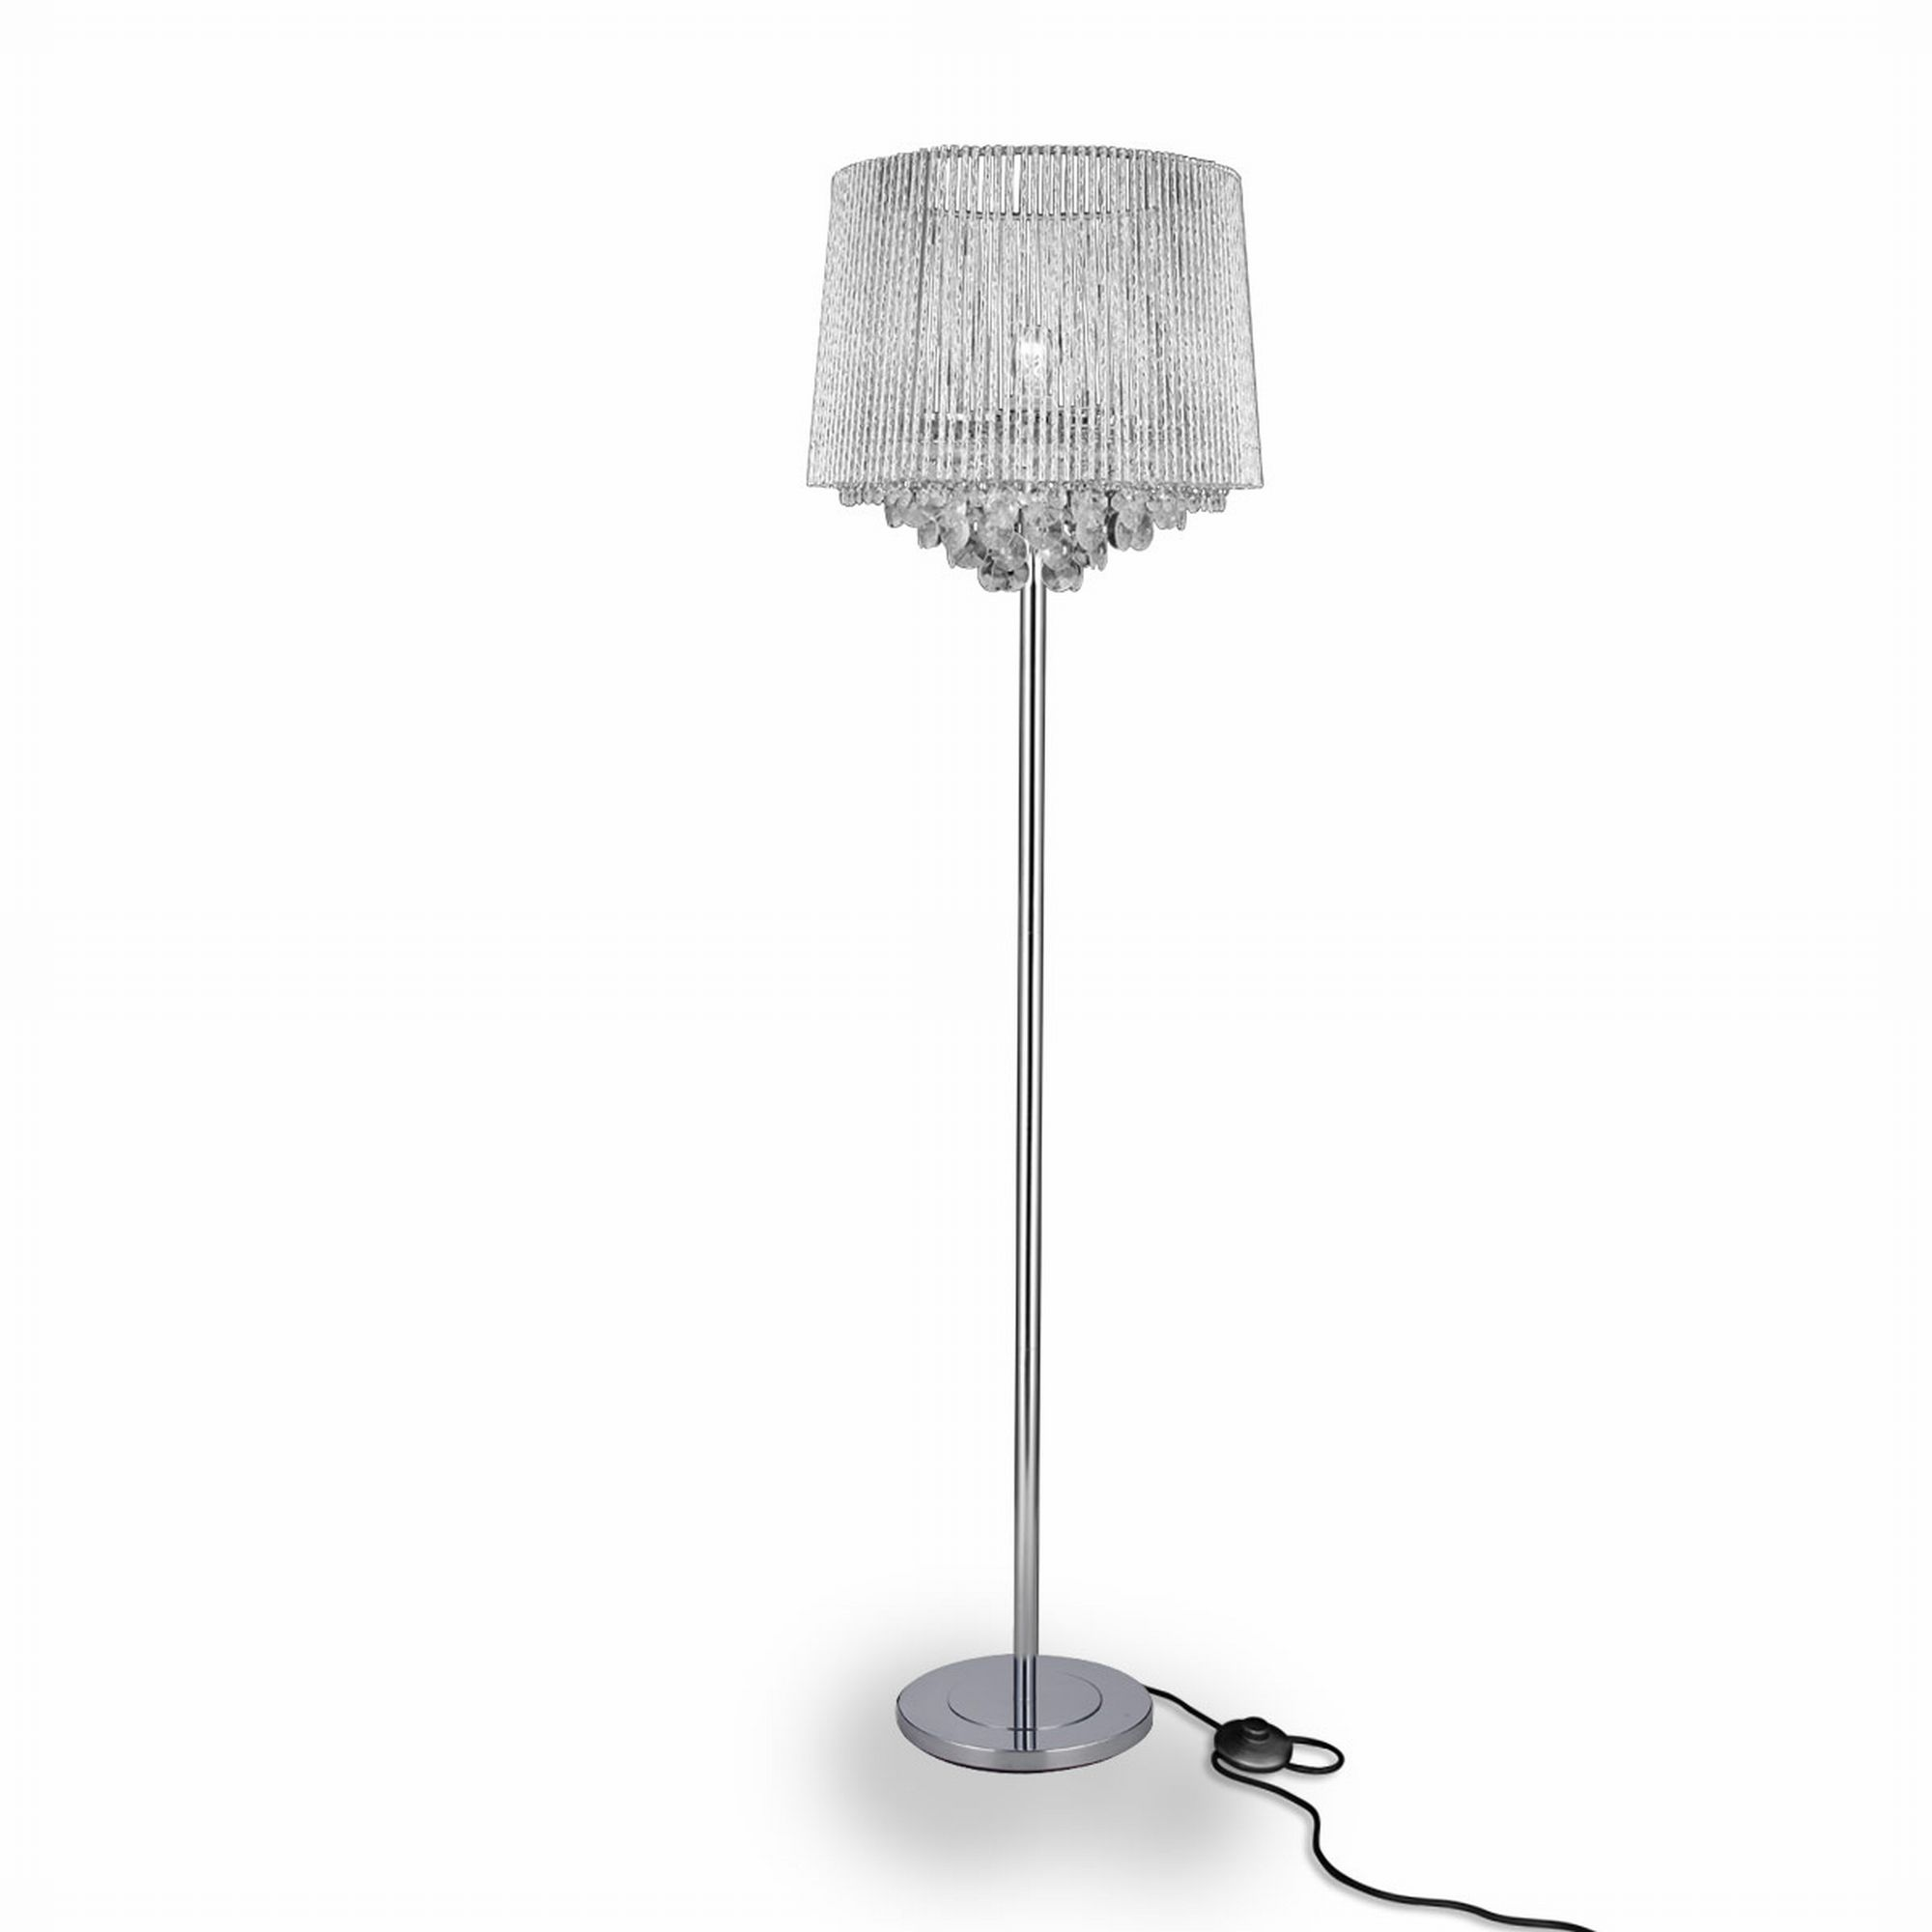 Elegante luxpro kristall stehleuchte stehlampe lampe for Stehlampe kristall